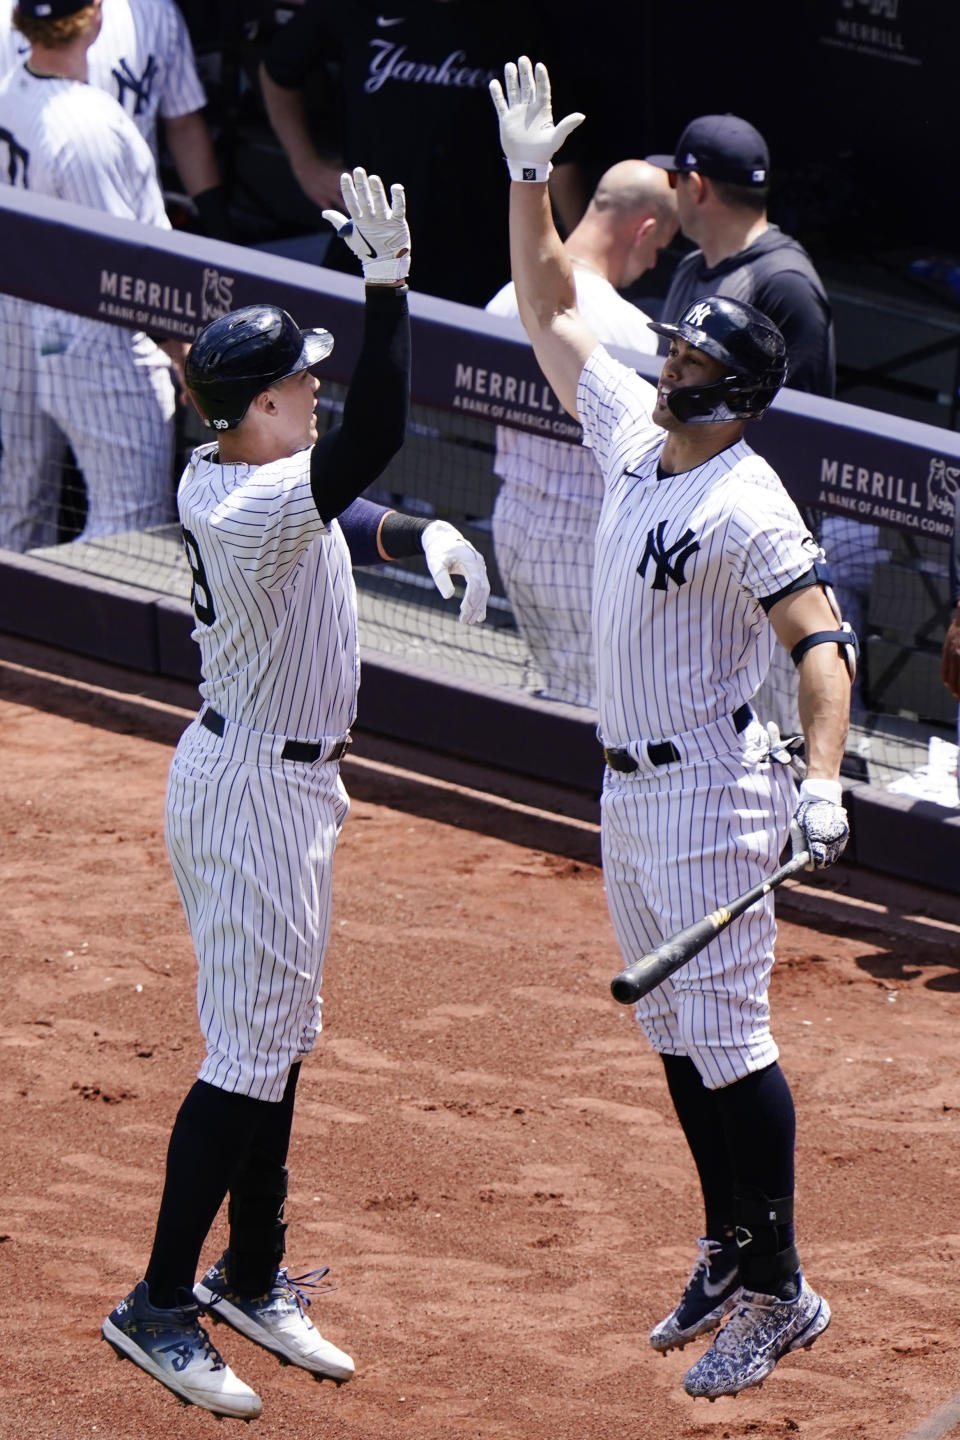 New York Yankees Aaron Judge, left, celebrates with on-deck batter and designated hitter Giancarlo Stanton during the first inning a baseball game against the Kansas City Royals, Thursday, June 24, 2021, at Yankee Stadium in New York. (AP Photo/Kathy Willens)